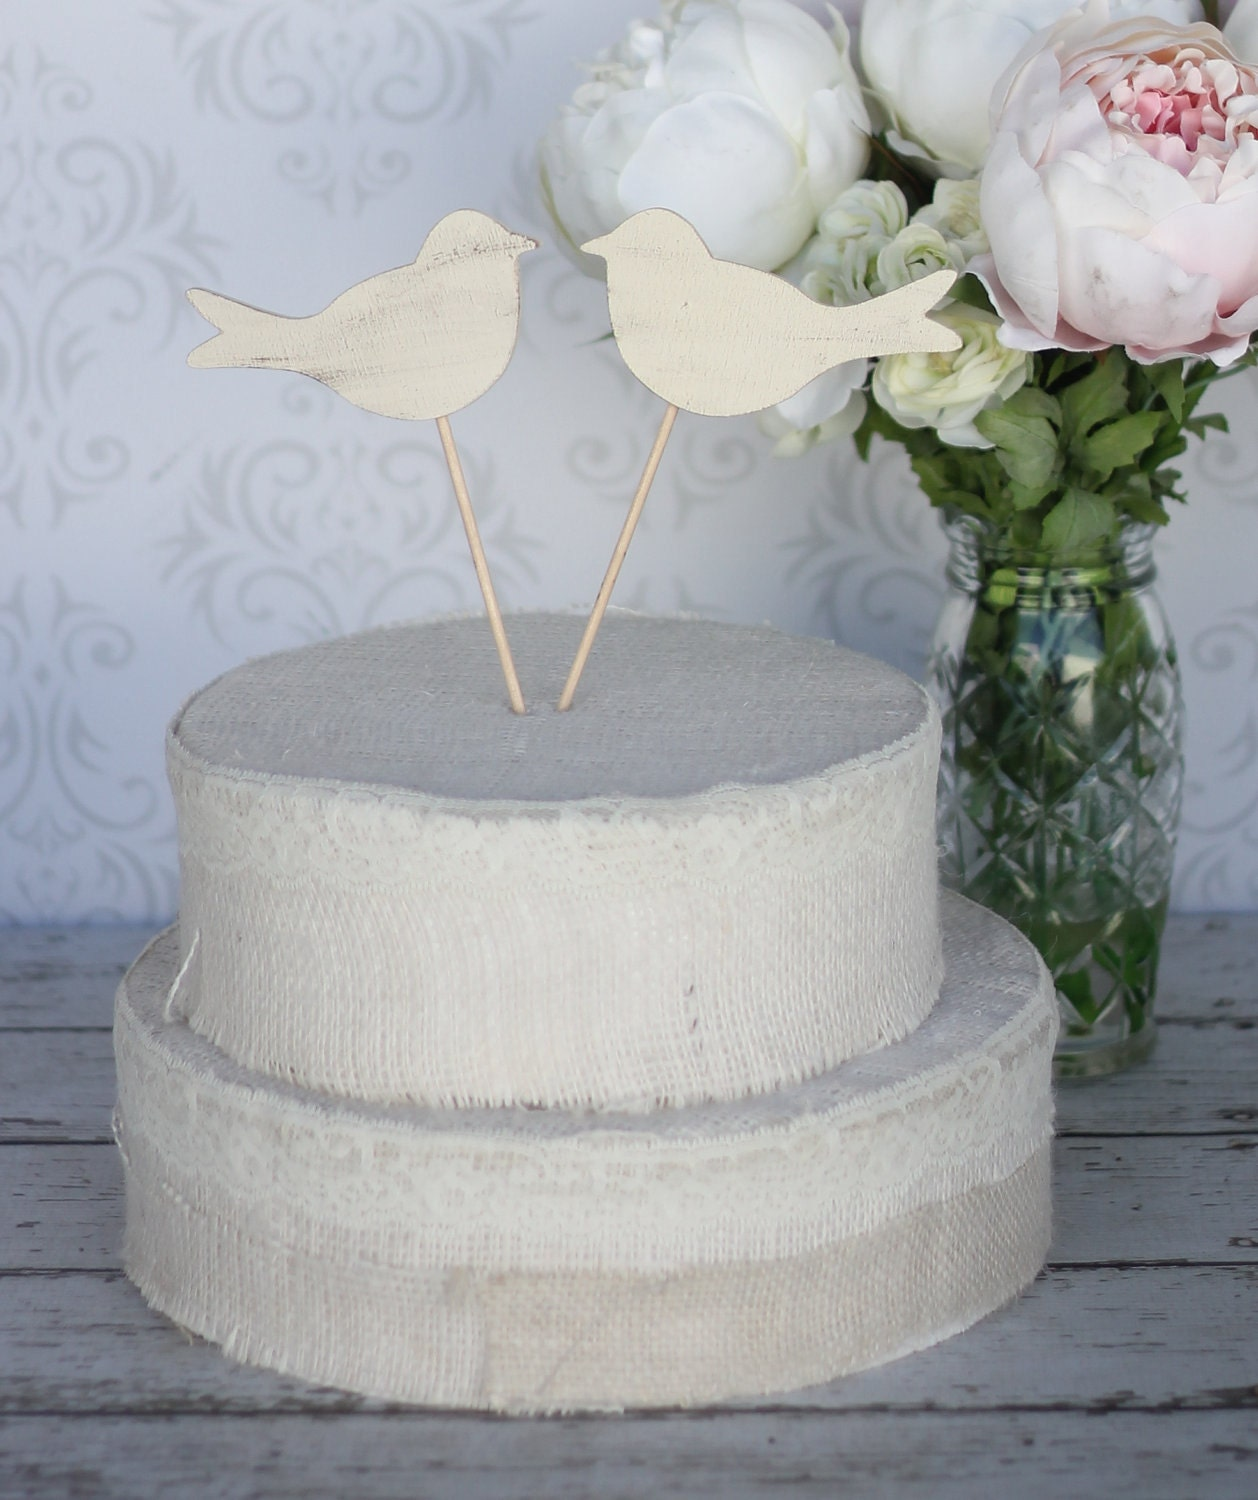 wedding cake toppers: Love Birds Wedding Cake Toppers